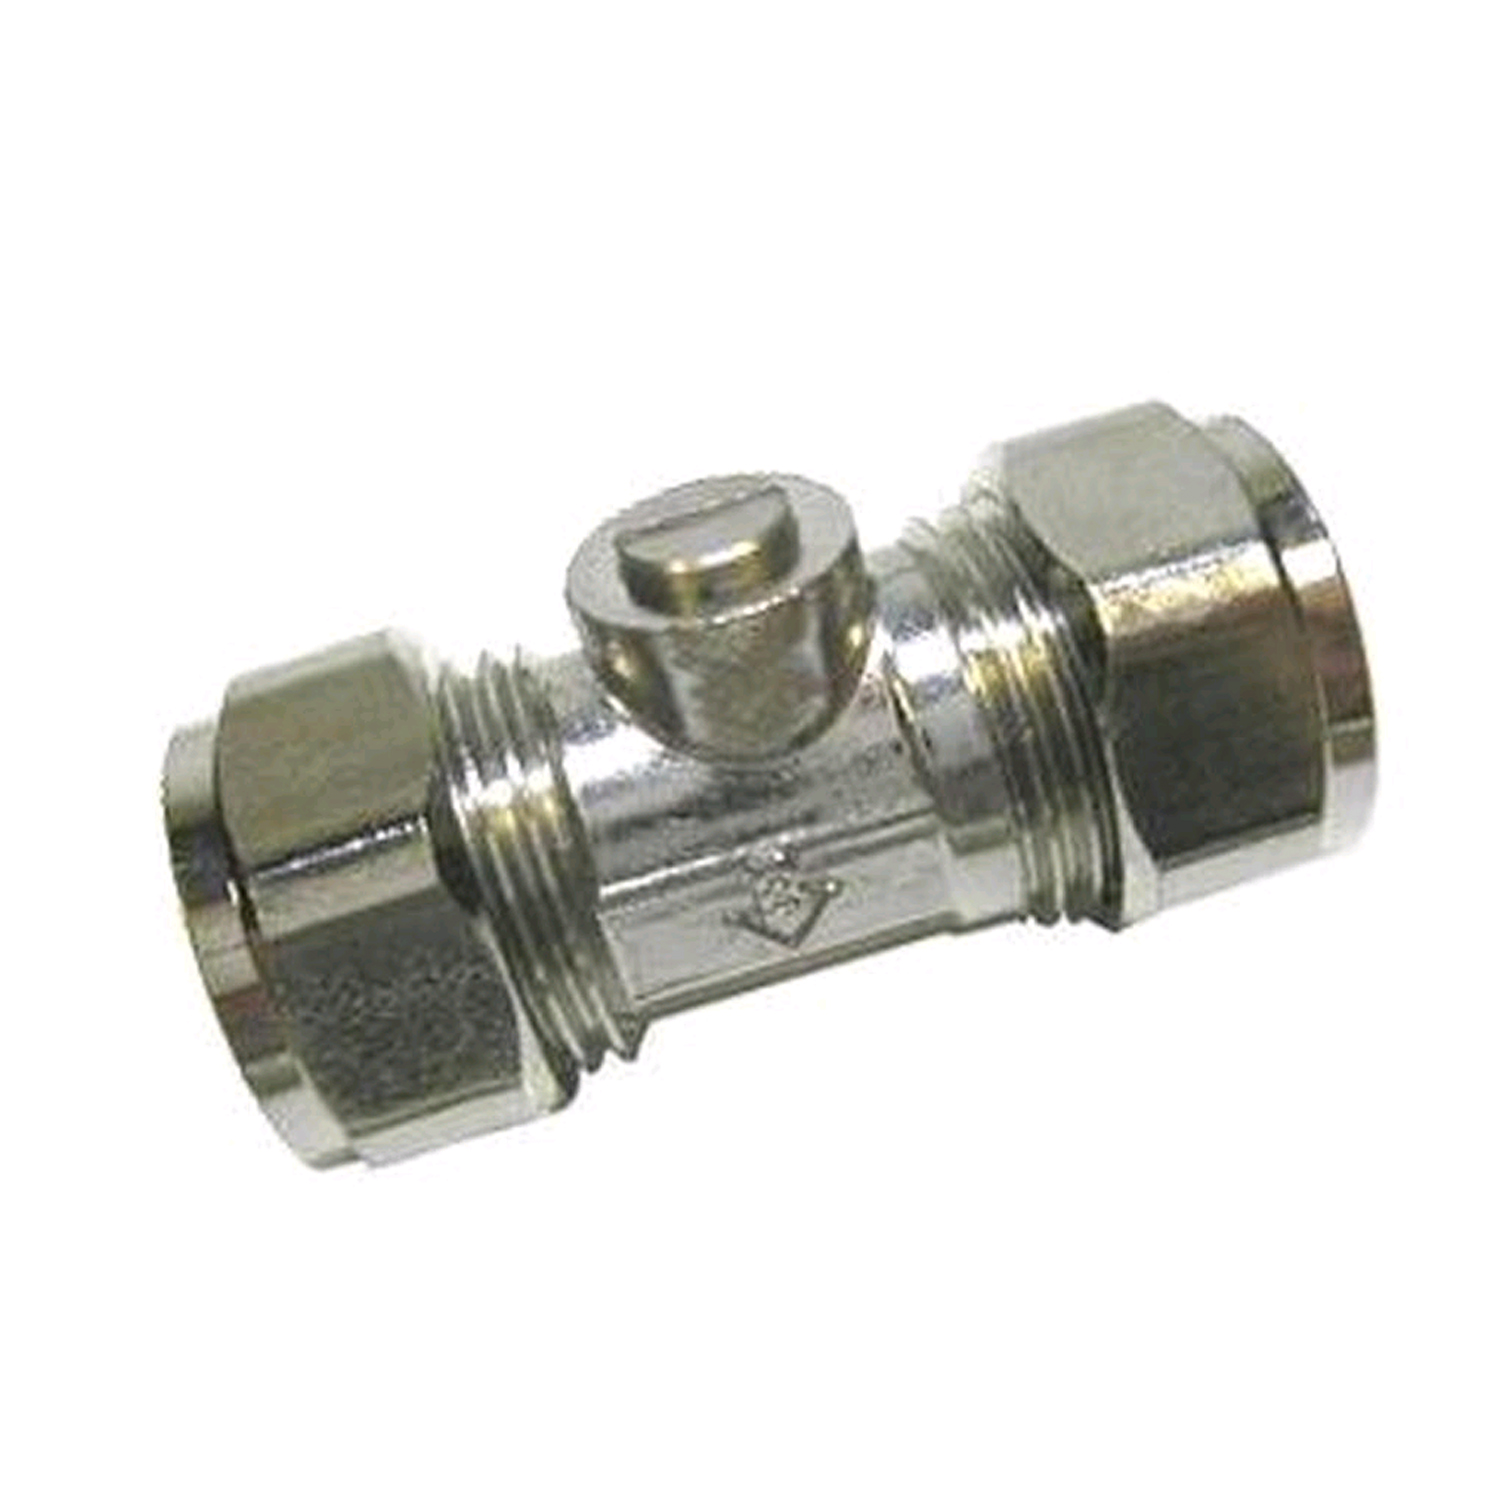 15MM LIGHT PATTERN ISOLATION VALVE - CP